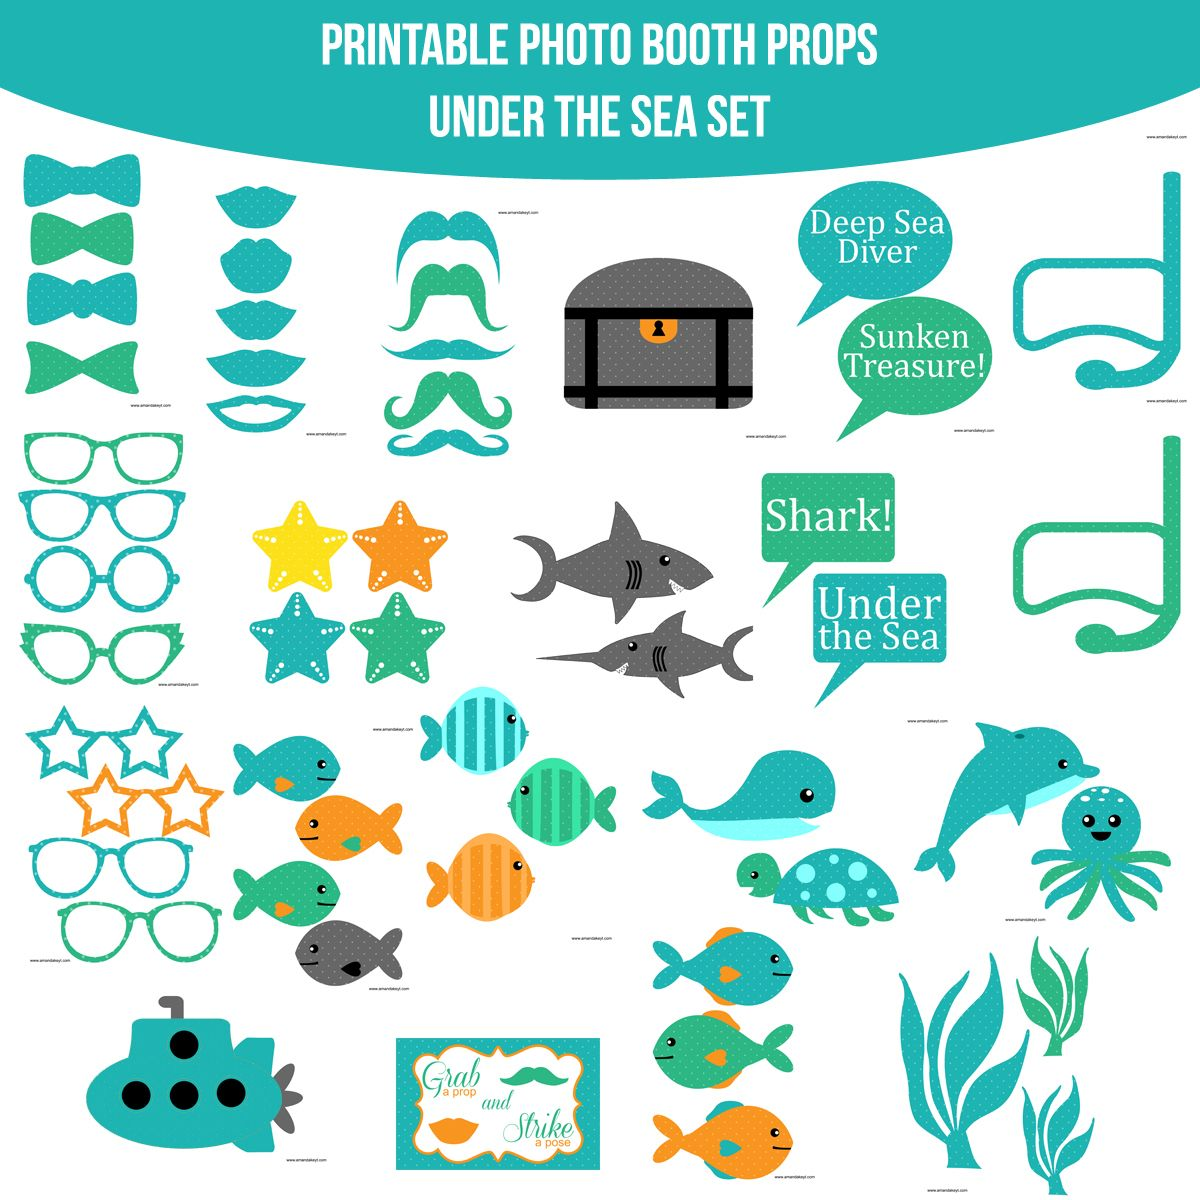 Instant Download Under The Sea Printable Photo Booth Prop